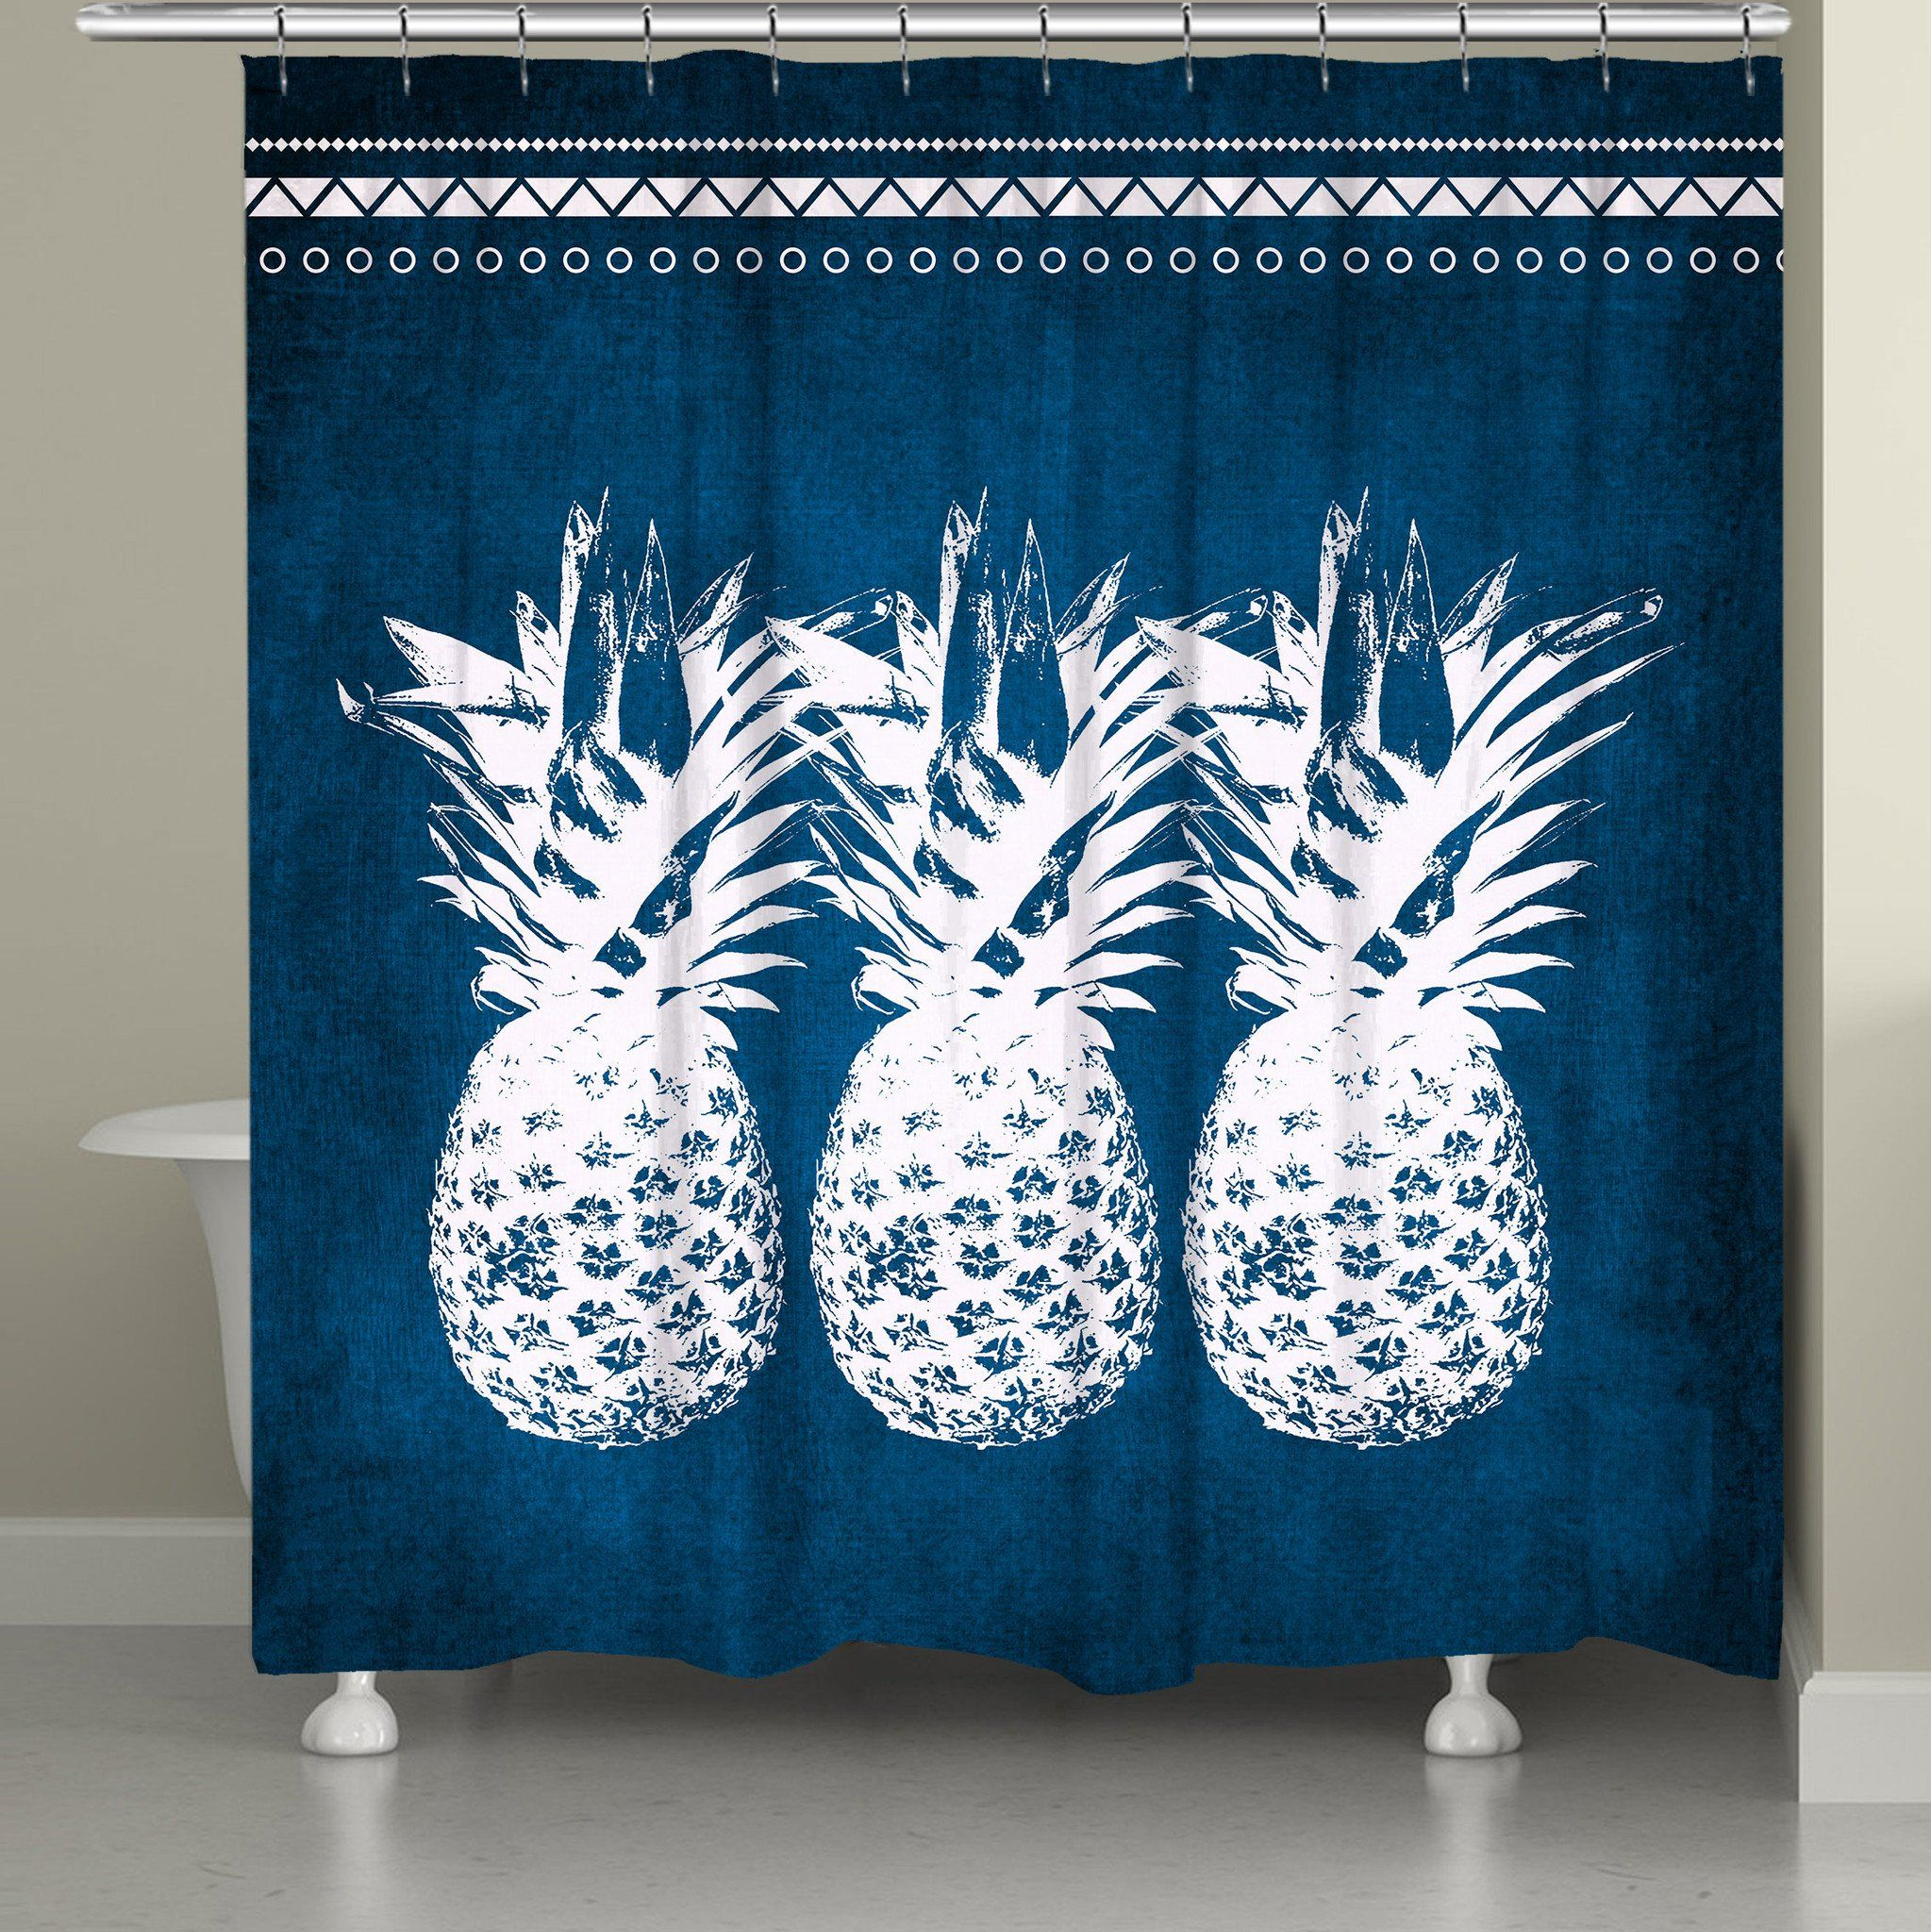 Indigo Pineapples Shower Curtain | Pineapple shower curtain and Products